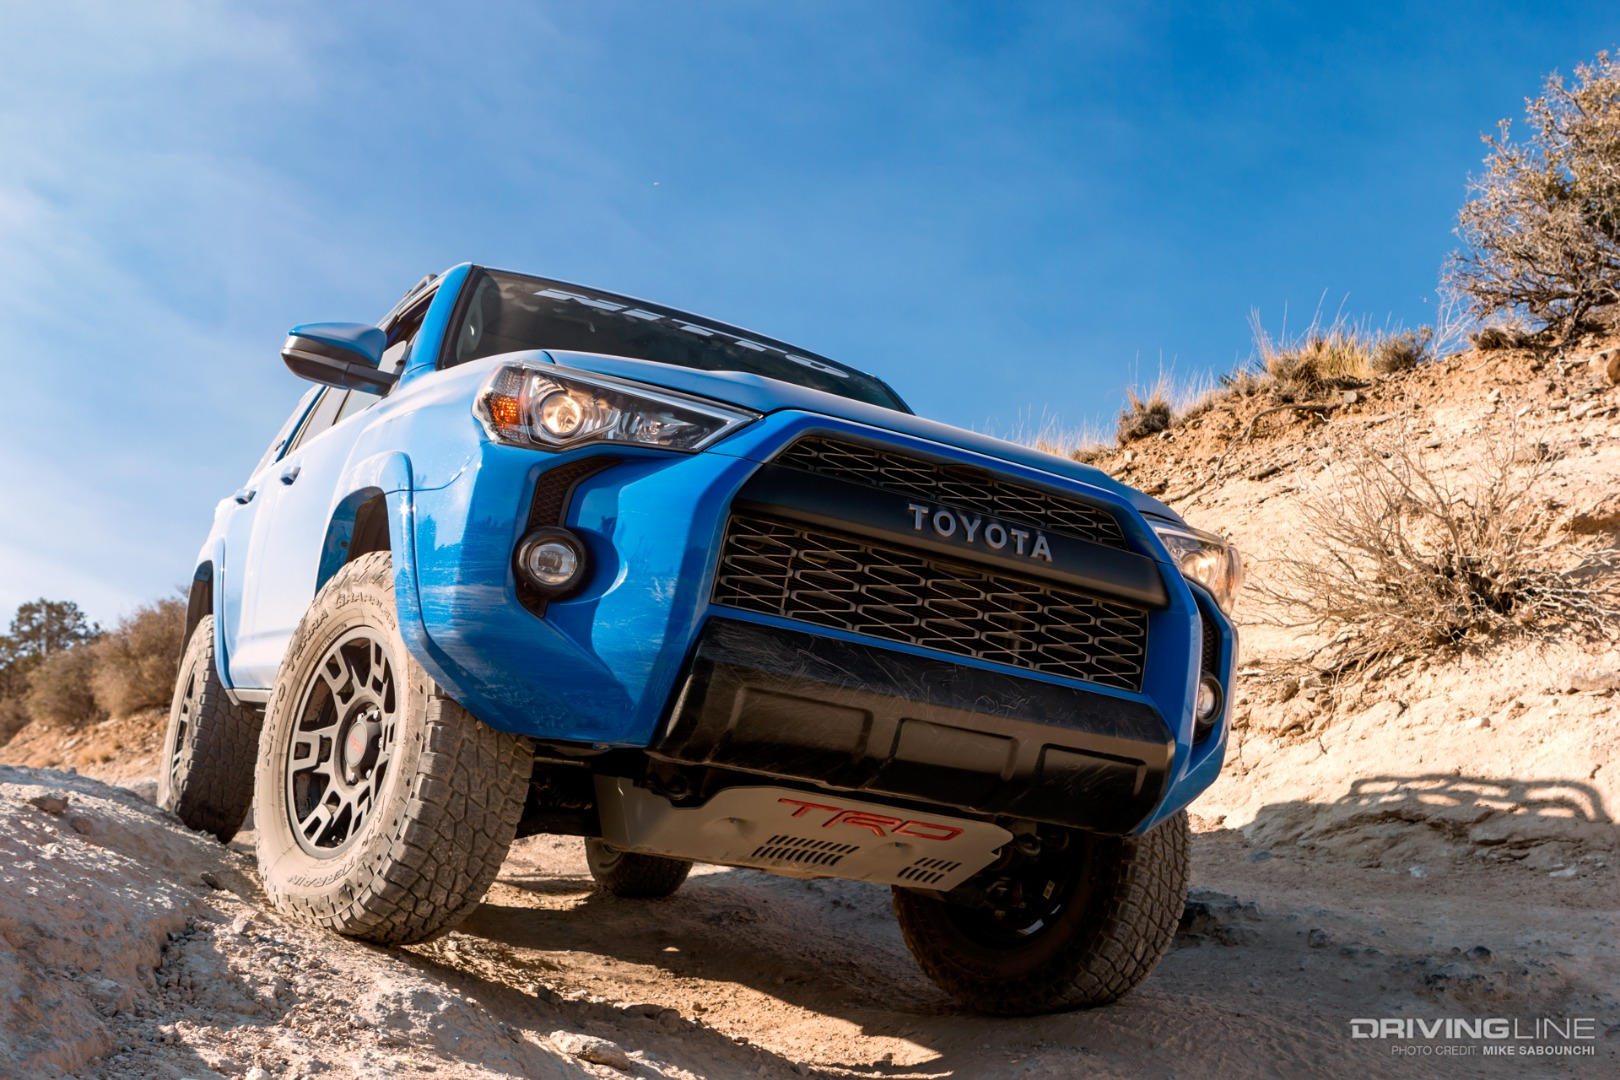 Toyota Sequoia Vs 4Runner >> 2019 Toyota 4Runner TRD Pro Off-Road Review | DrivingLine